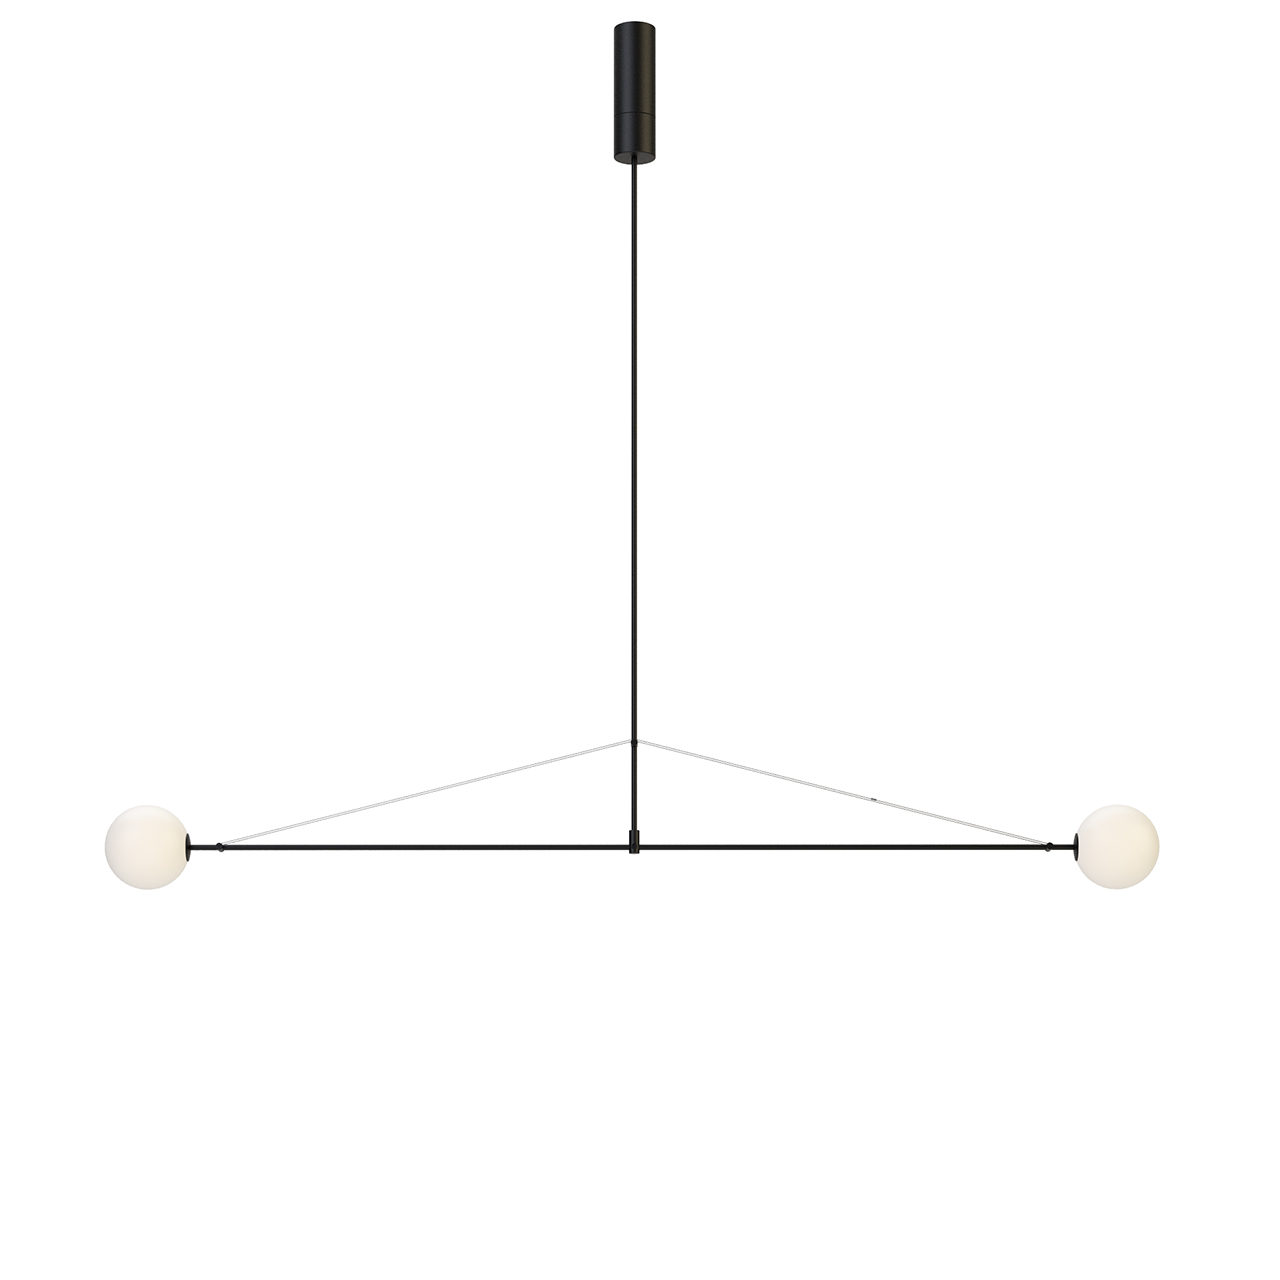 Mobile Chandelier 2 by Michael Anastassiades